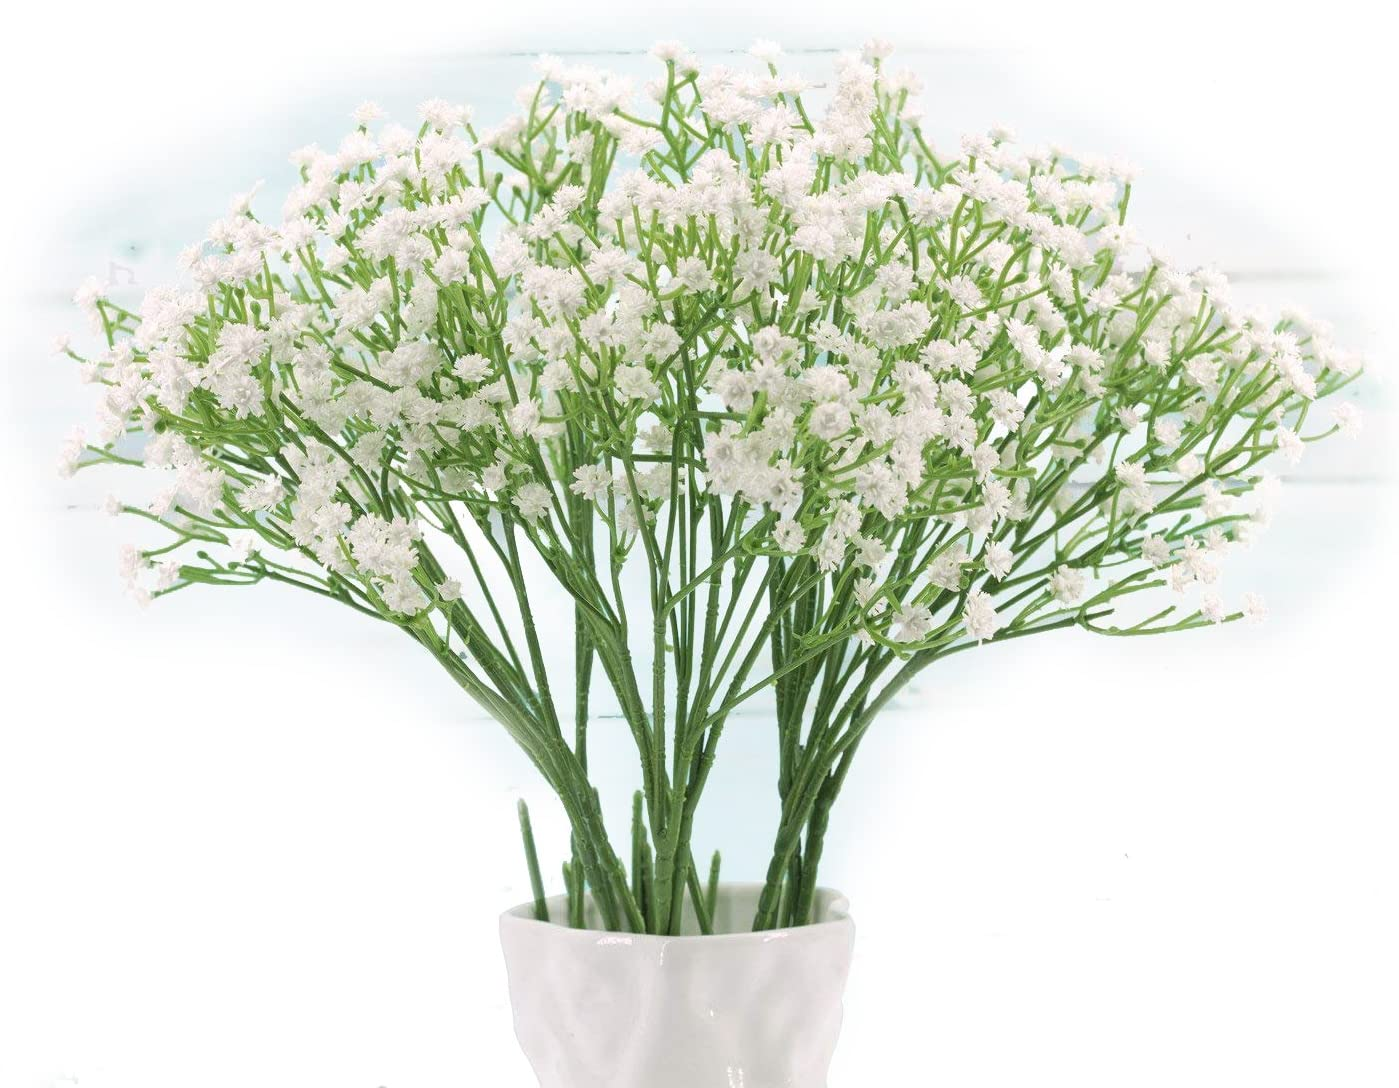 Baby Breath, Gypsophila Artificial Fake Silk Plants, Real Touch Flowers DIY Home Garden for Wedding Party Decoration, Idea Present for Thanksgiving, Halloween, Christmas, New Year (White), 10Pcs